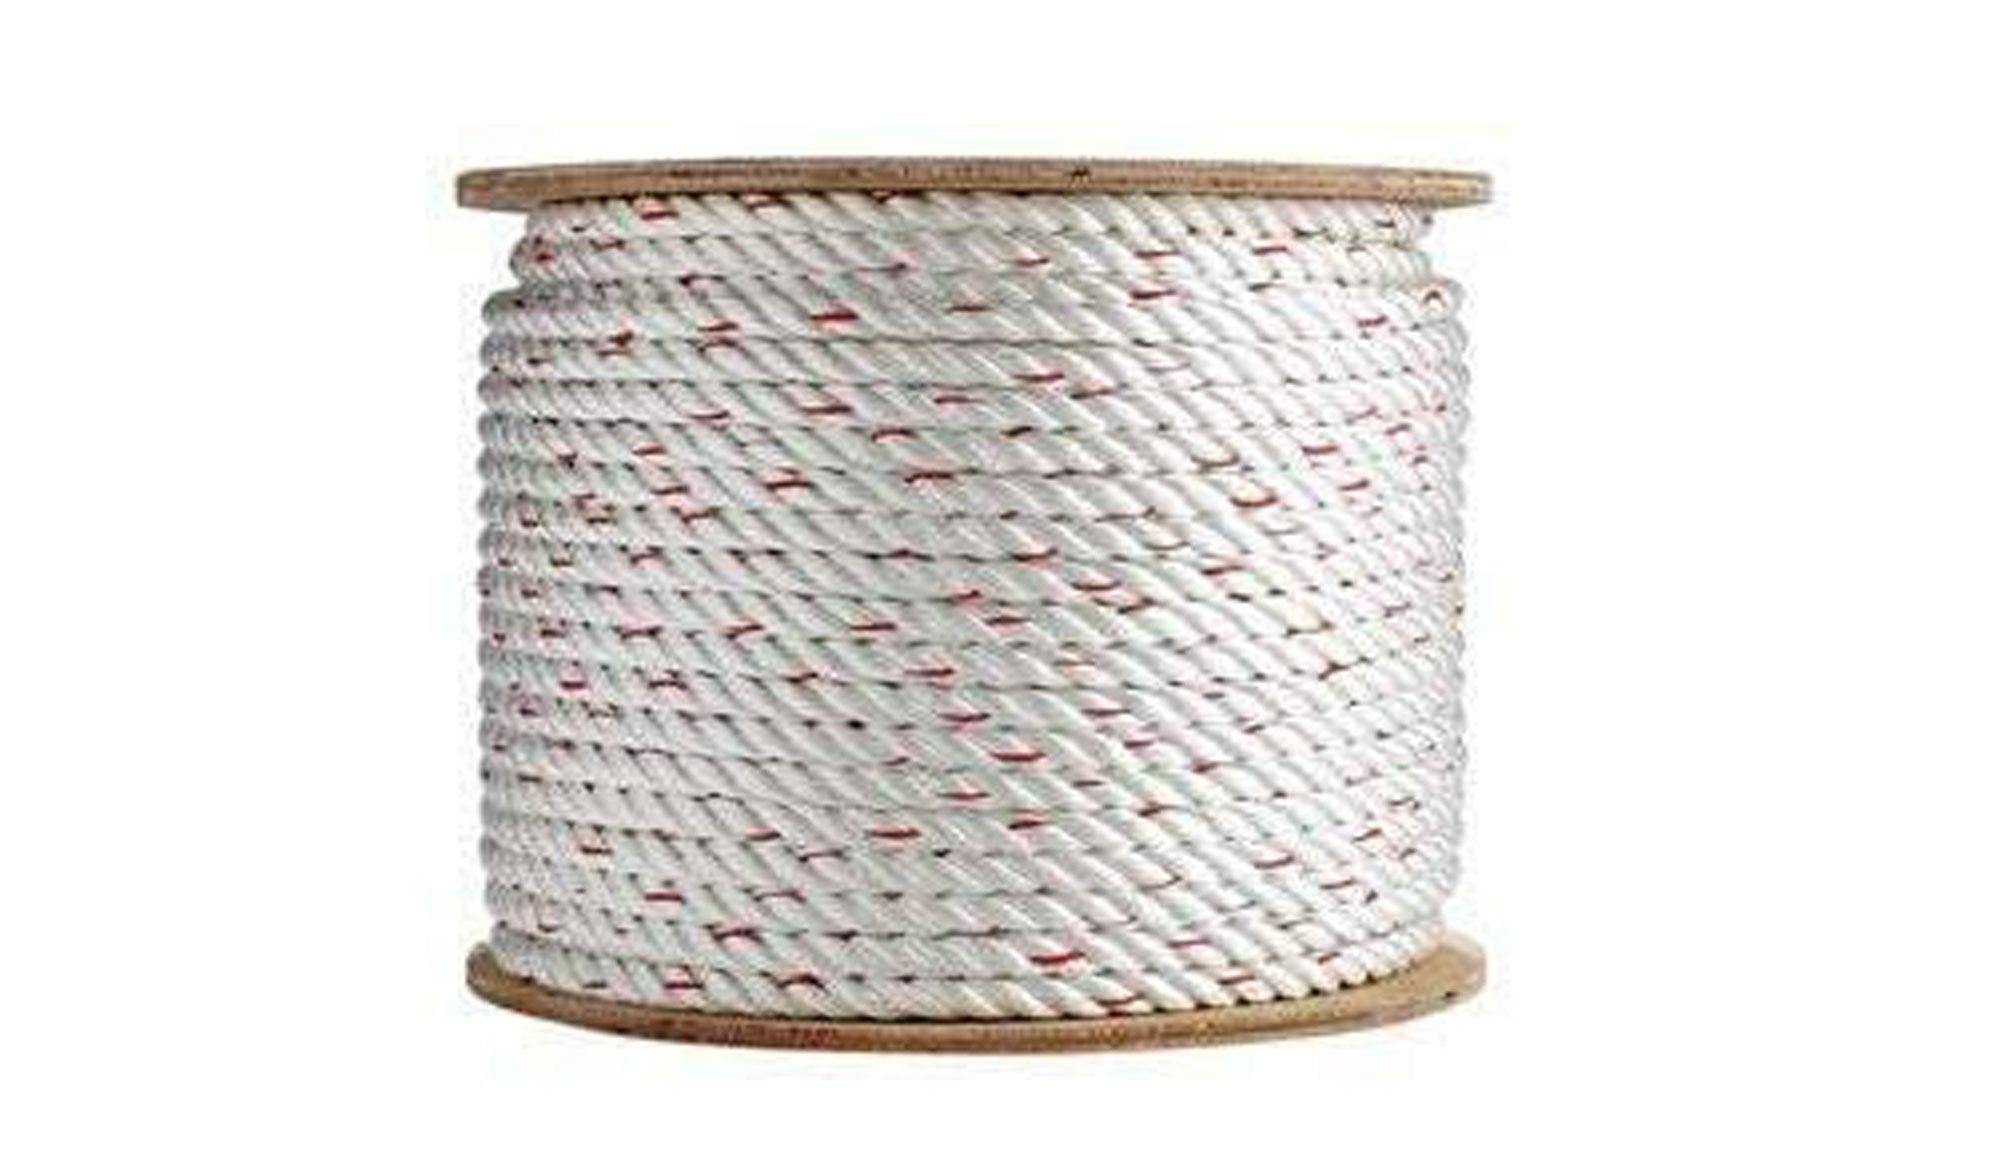 Twisted rope on a spool